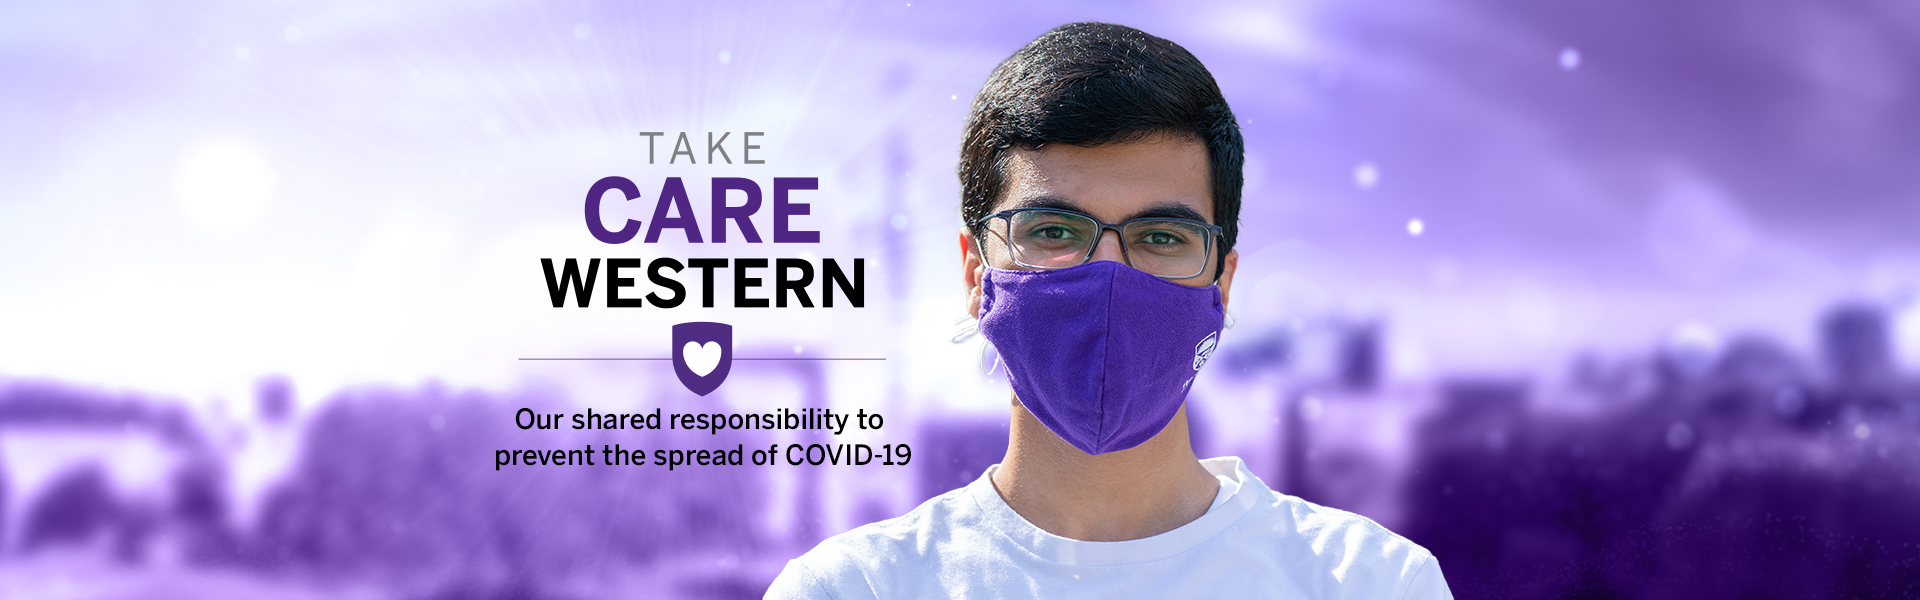 Take Care Western, featuring a photo of a student wearing a purple mask